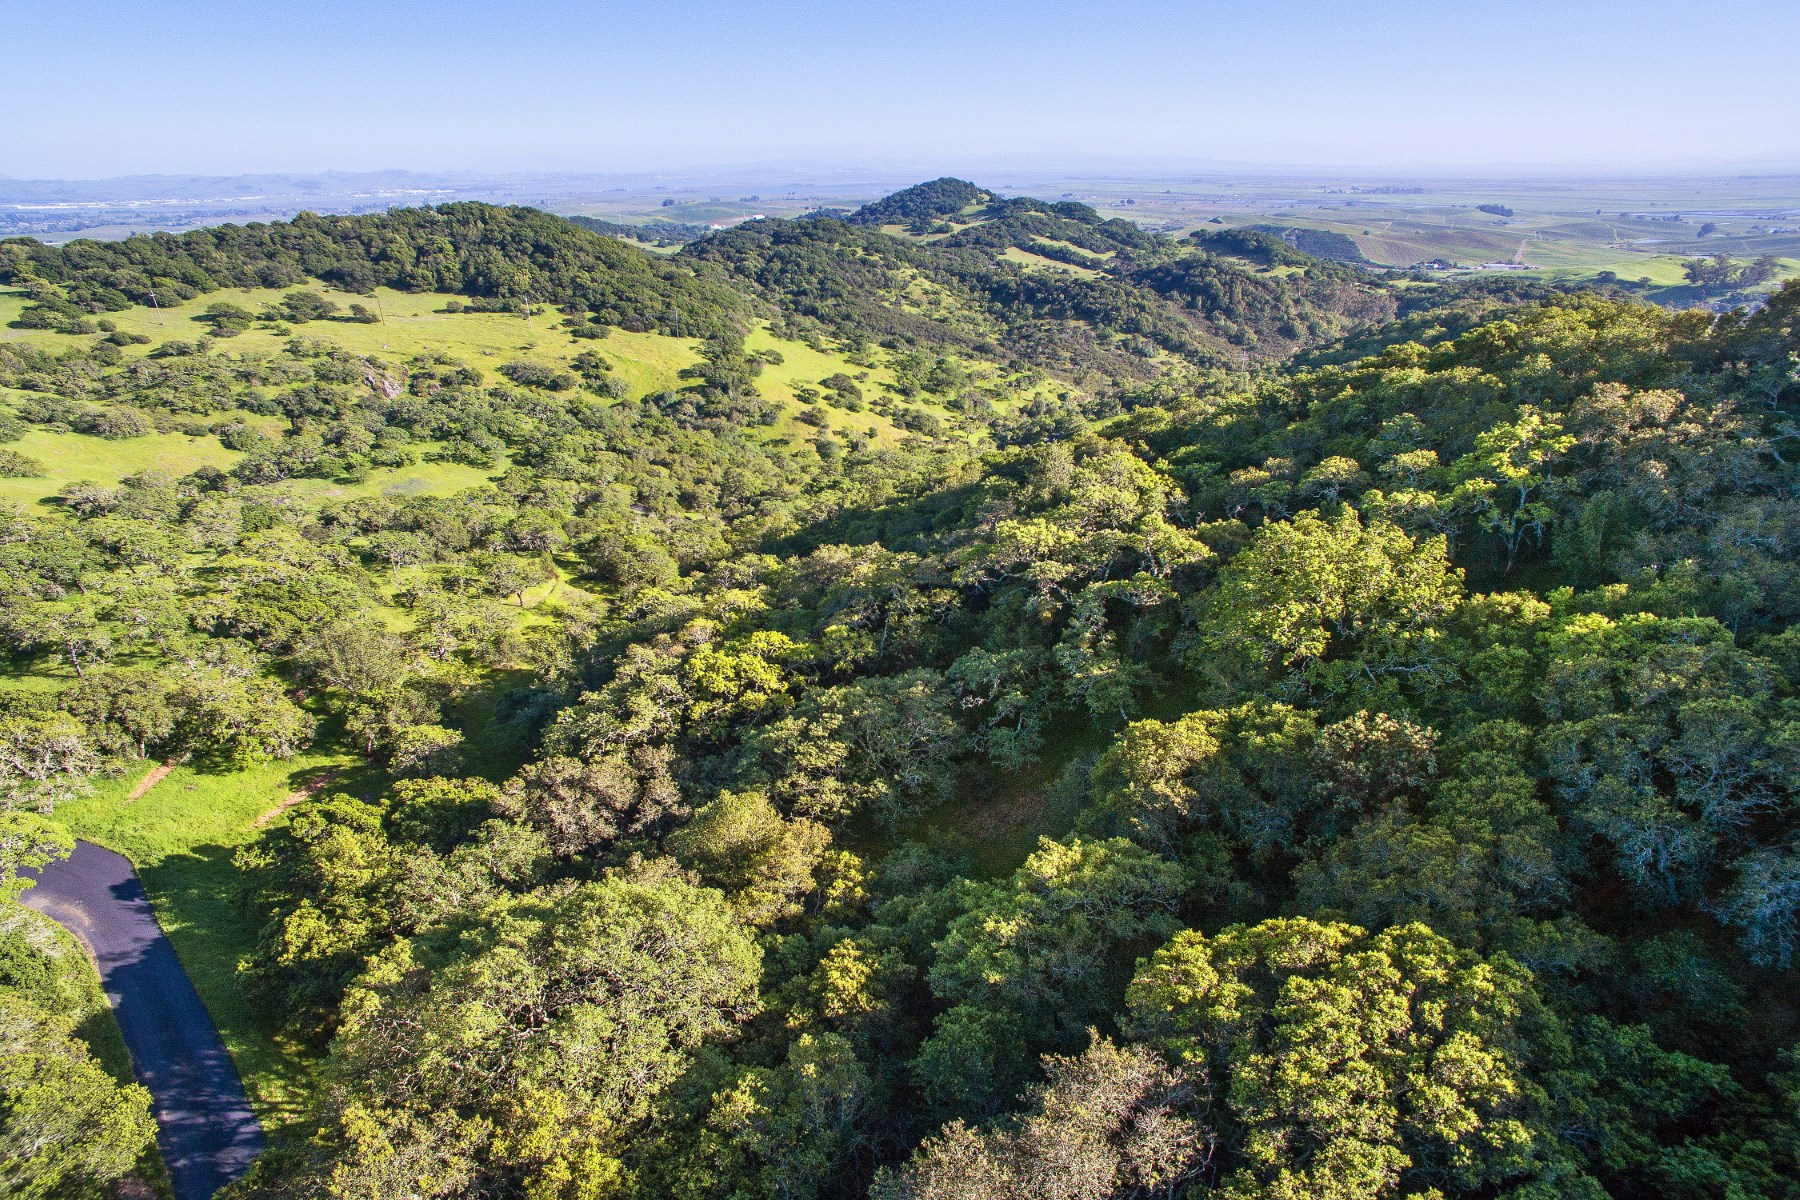 Tek Ailelik Ev için Satış at Over 10 Acres of Exceptional Level Land 19292 Arrowhead Mountain Rd. Sonoma, Kaliforniya, 95476 Amerika Birleşik Devletleri